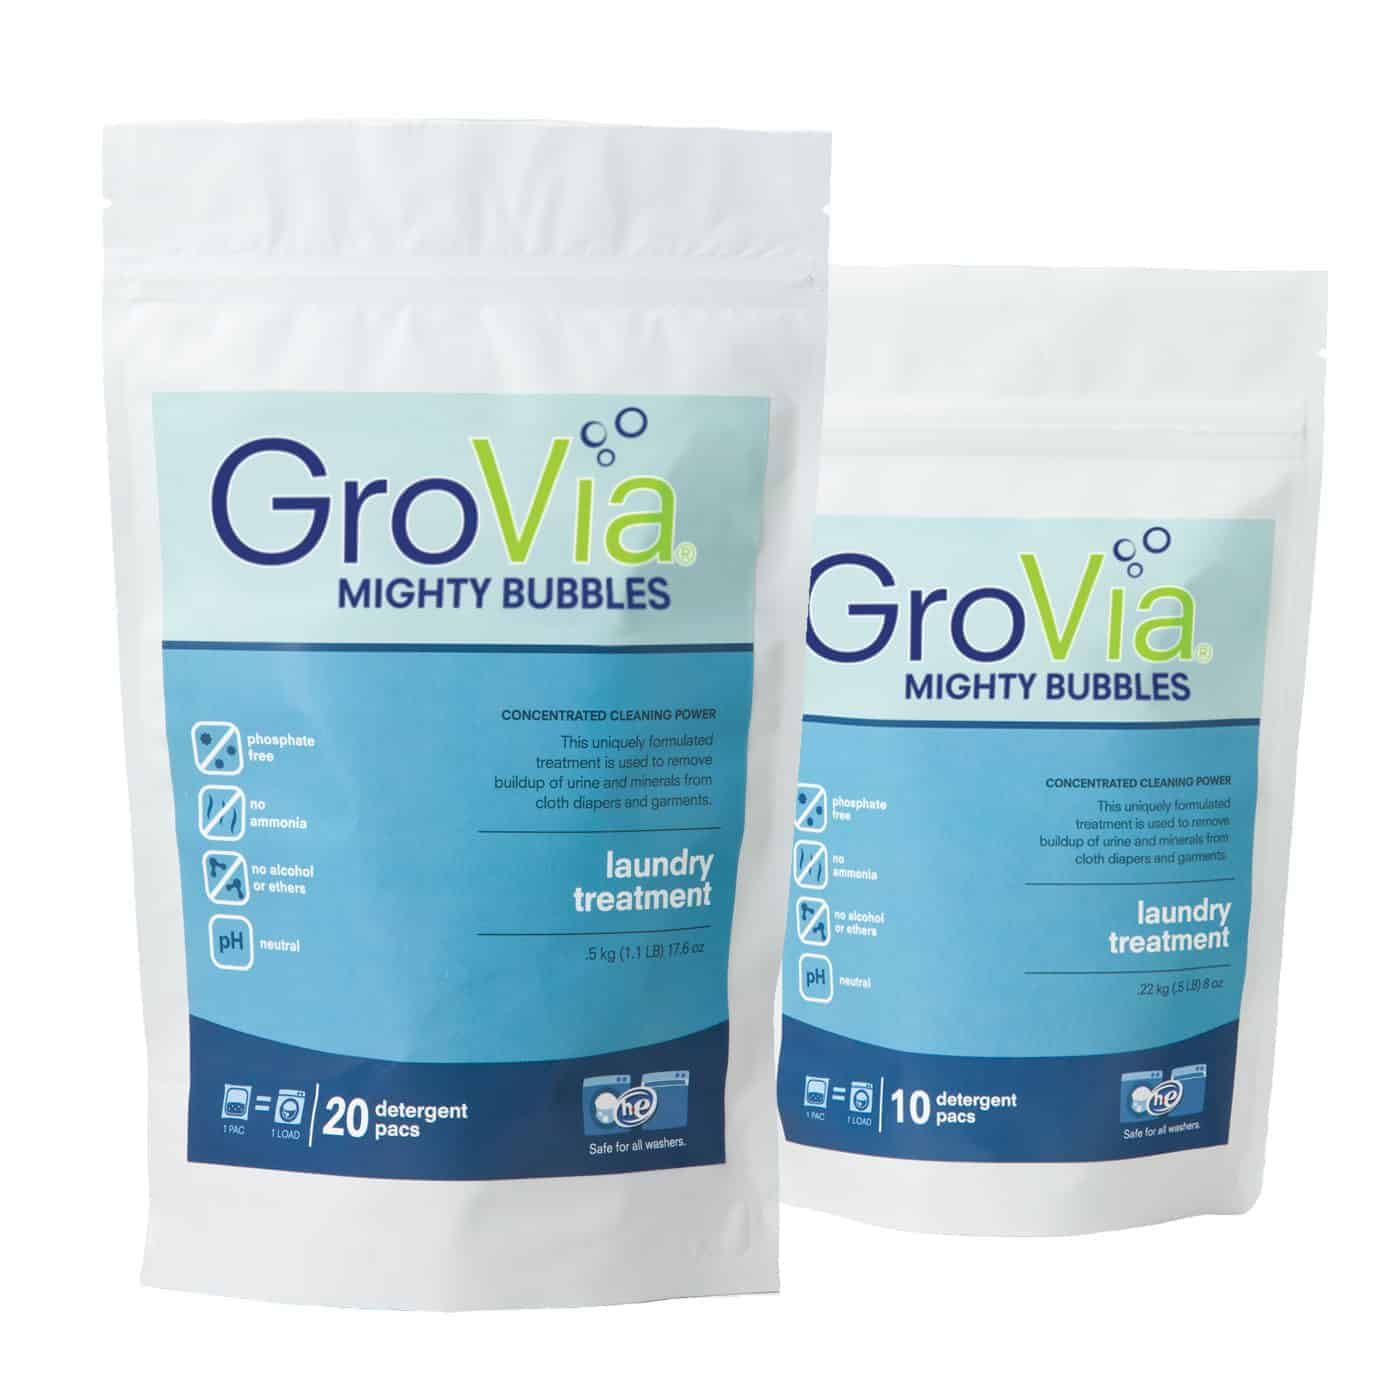 GroVia Mighty Bubbles Laundry Treatment